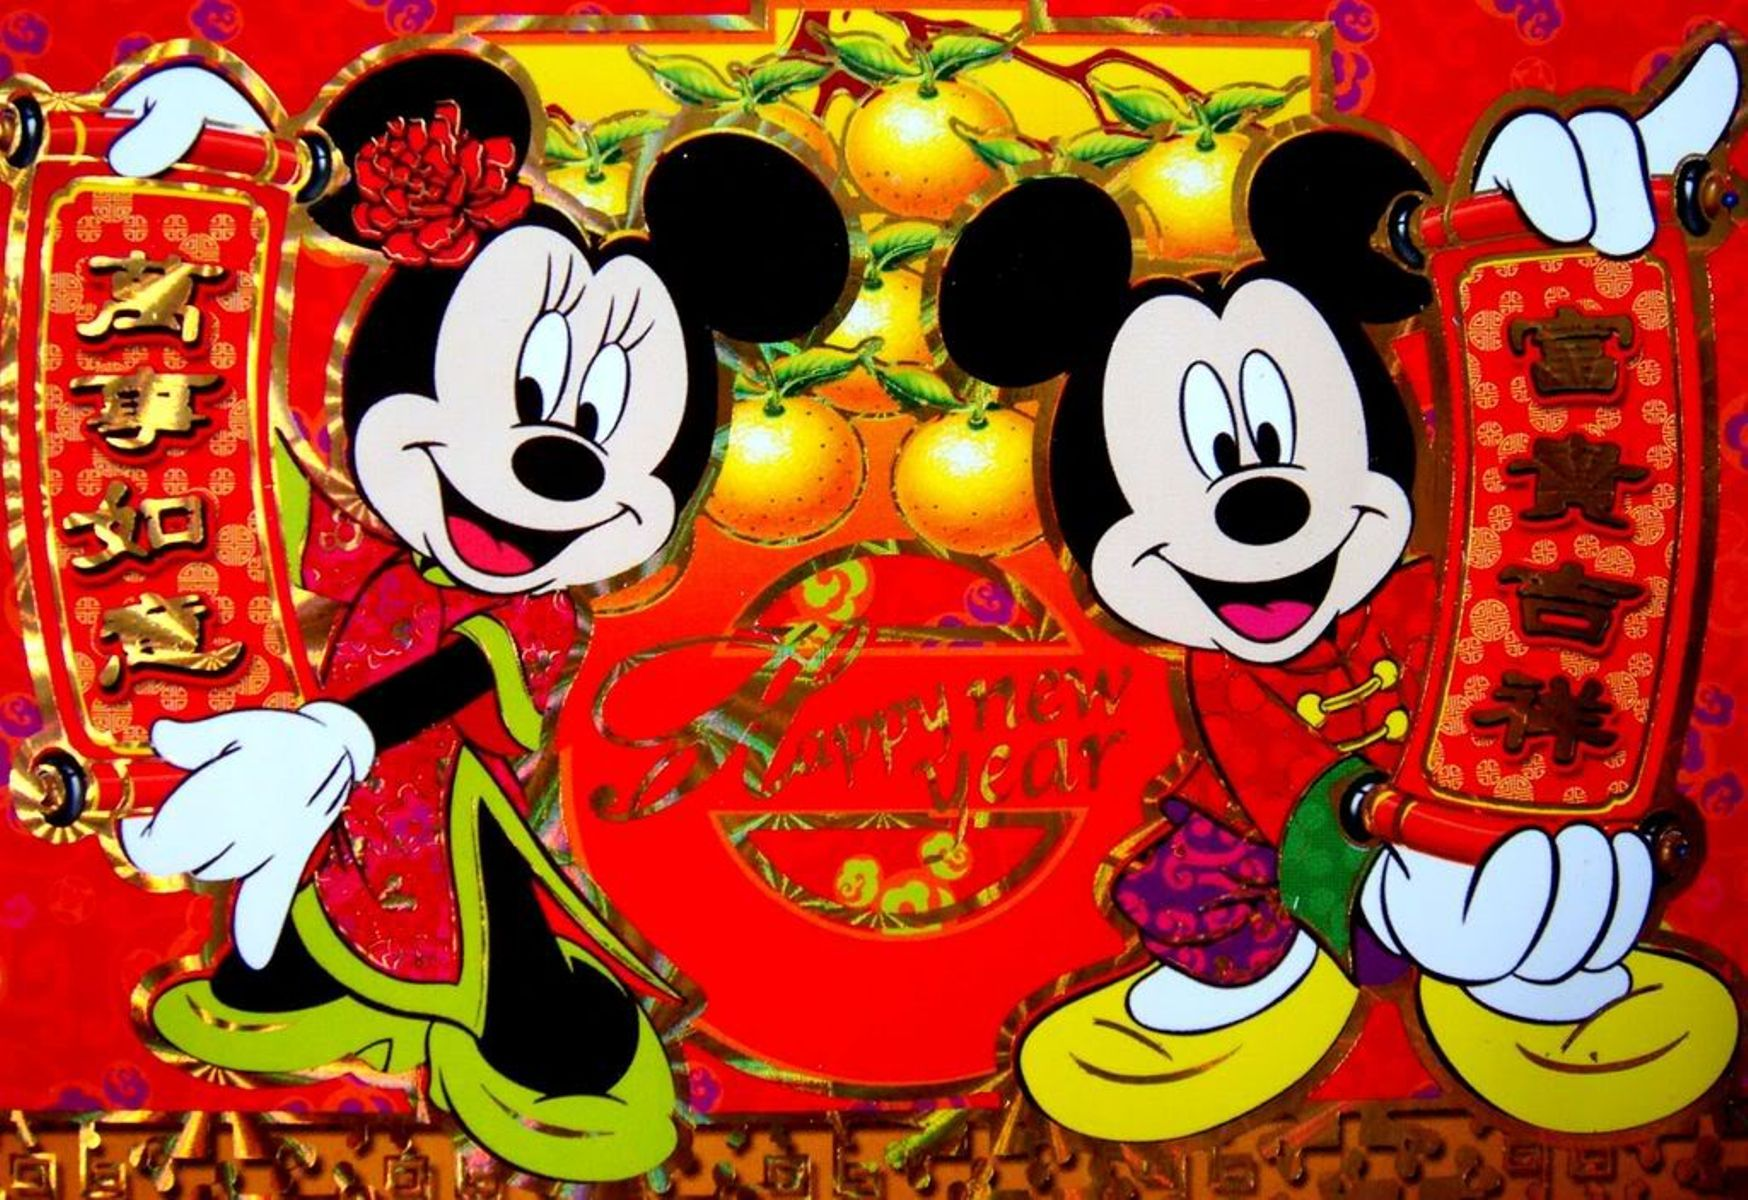 Disney Cartoon Chinese New Year Picture Chinese New Year Card Chinese New Year Pictures Halloween Pictures